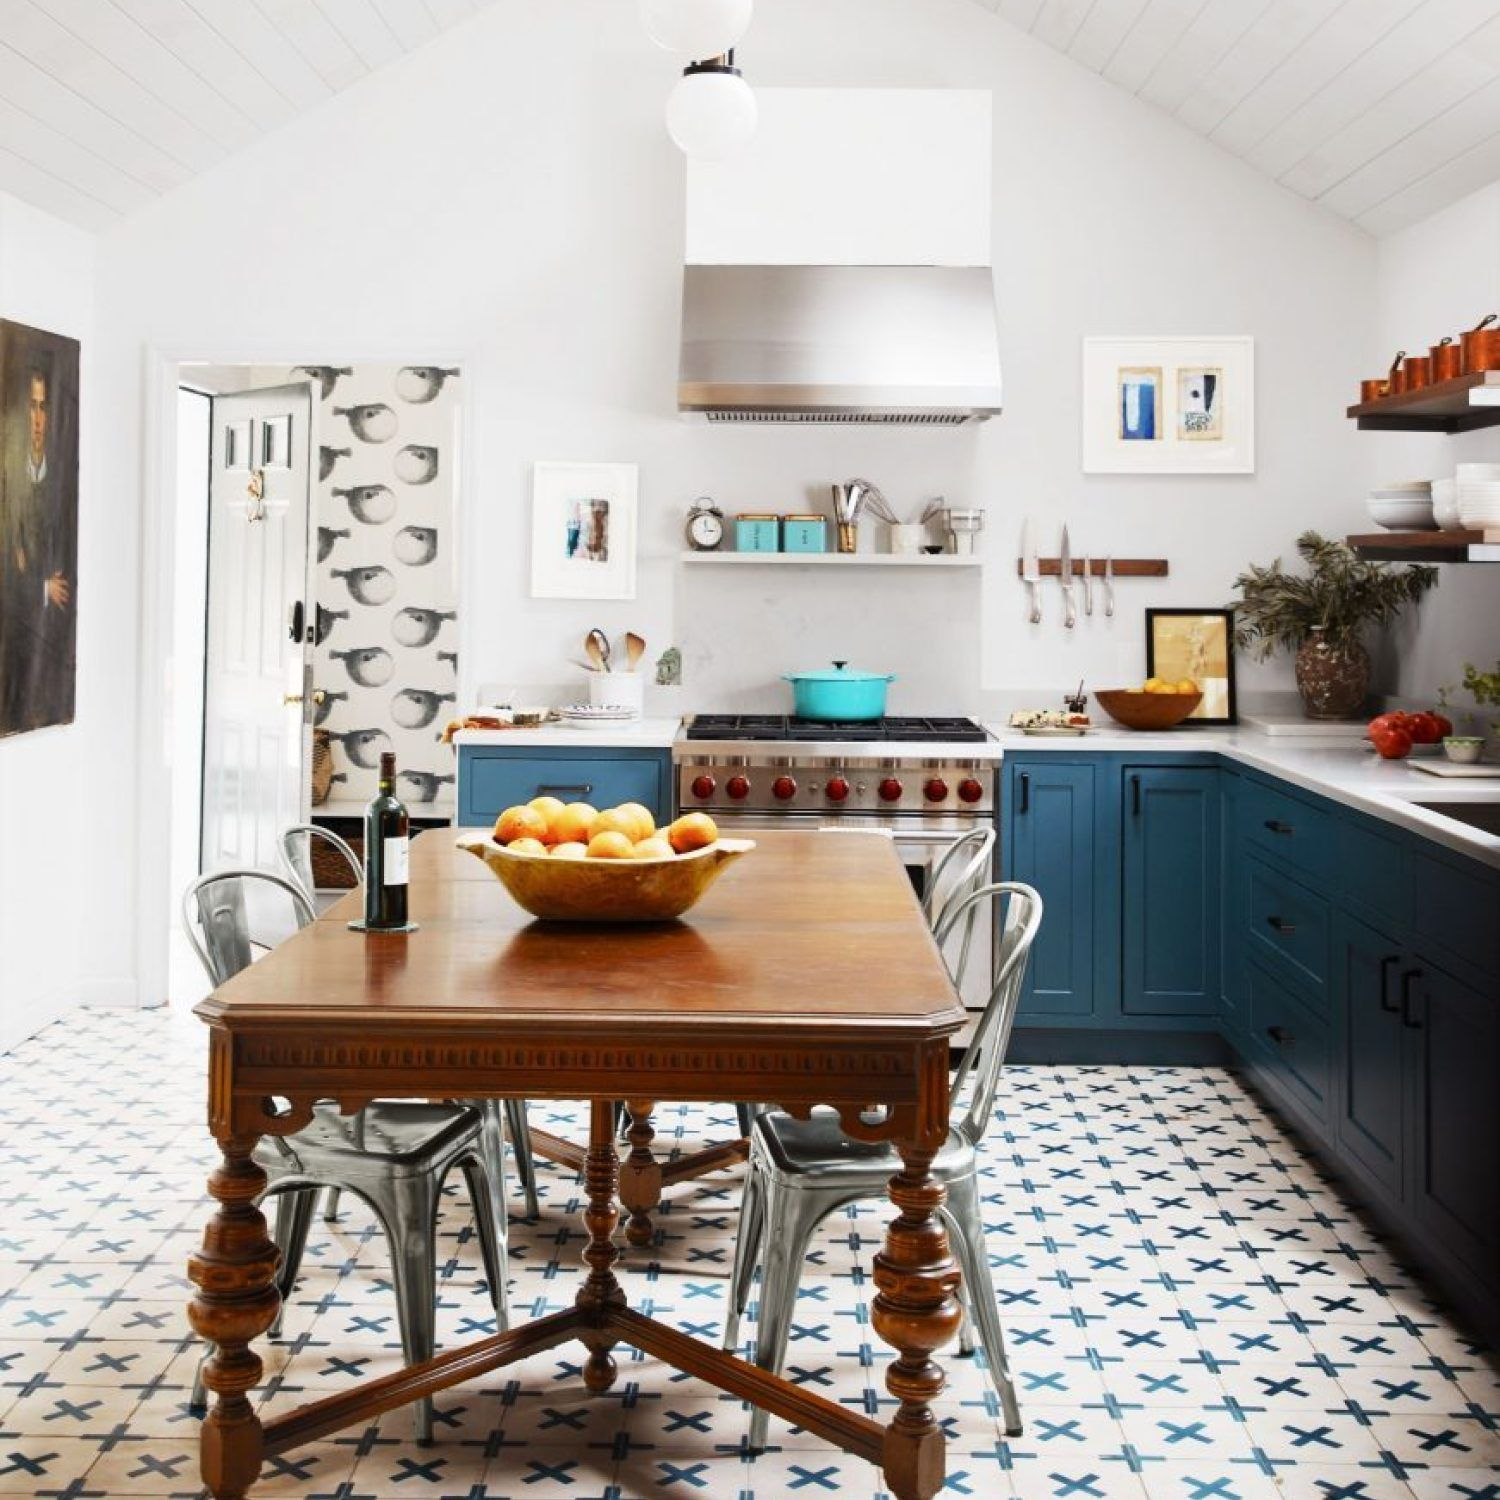 44 outrageous quirky kitchen diner ideas tips 114 quirky kitchen contemporary kitchen on kitchen ideas quirky id=15704